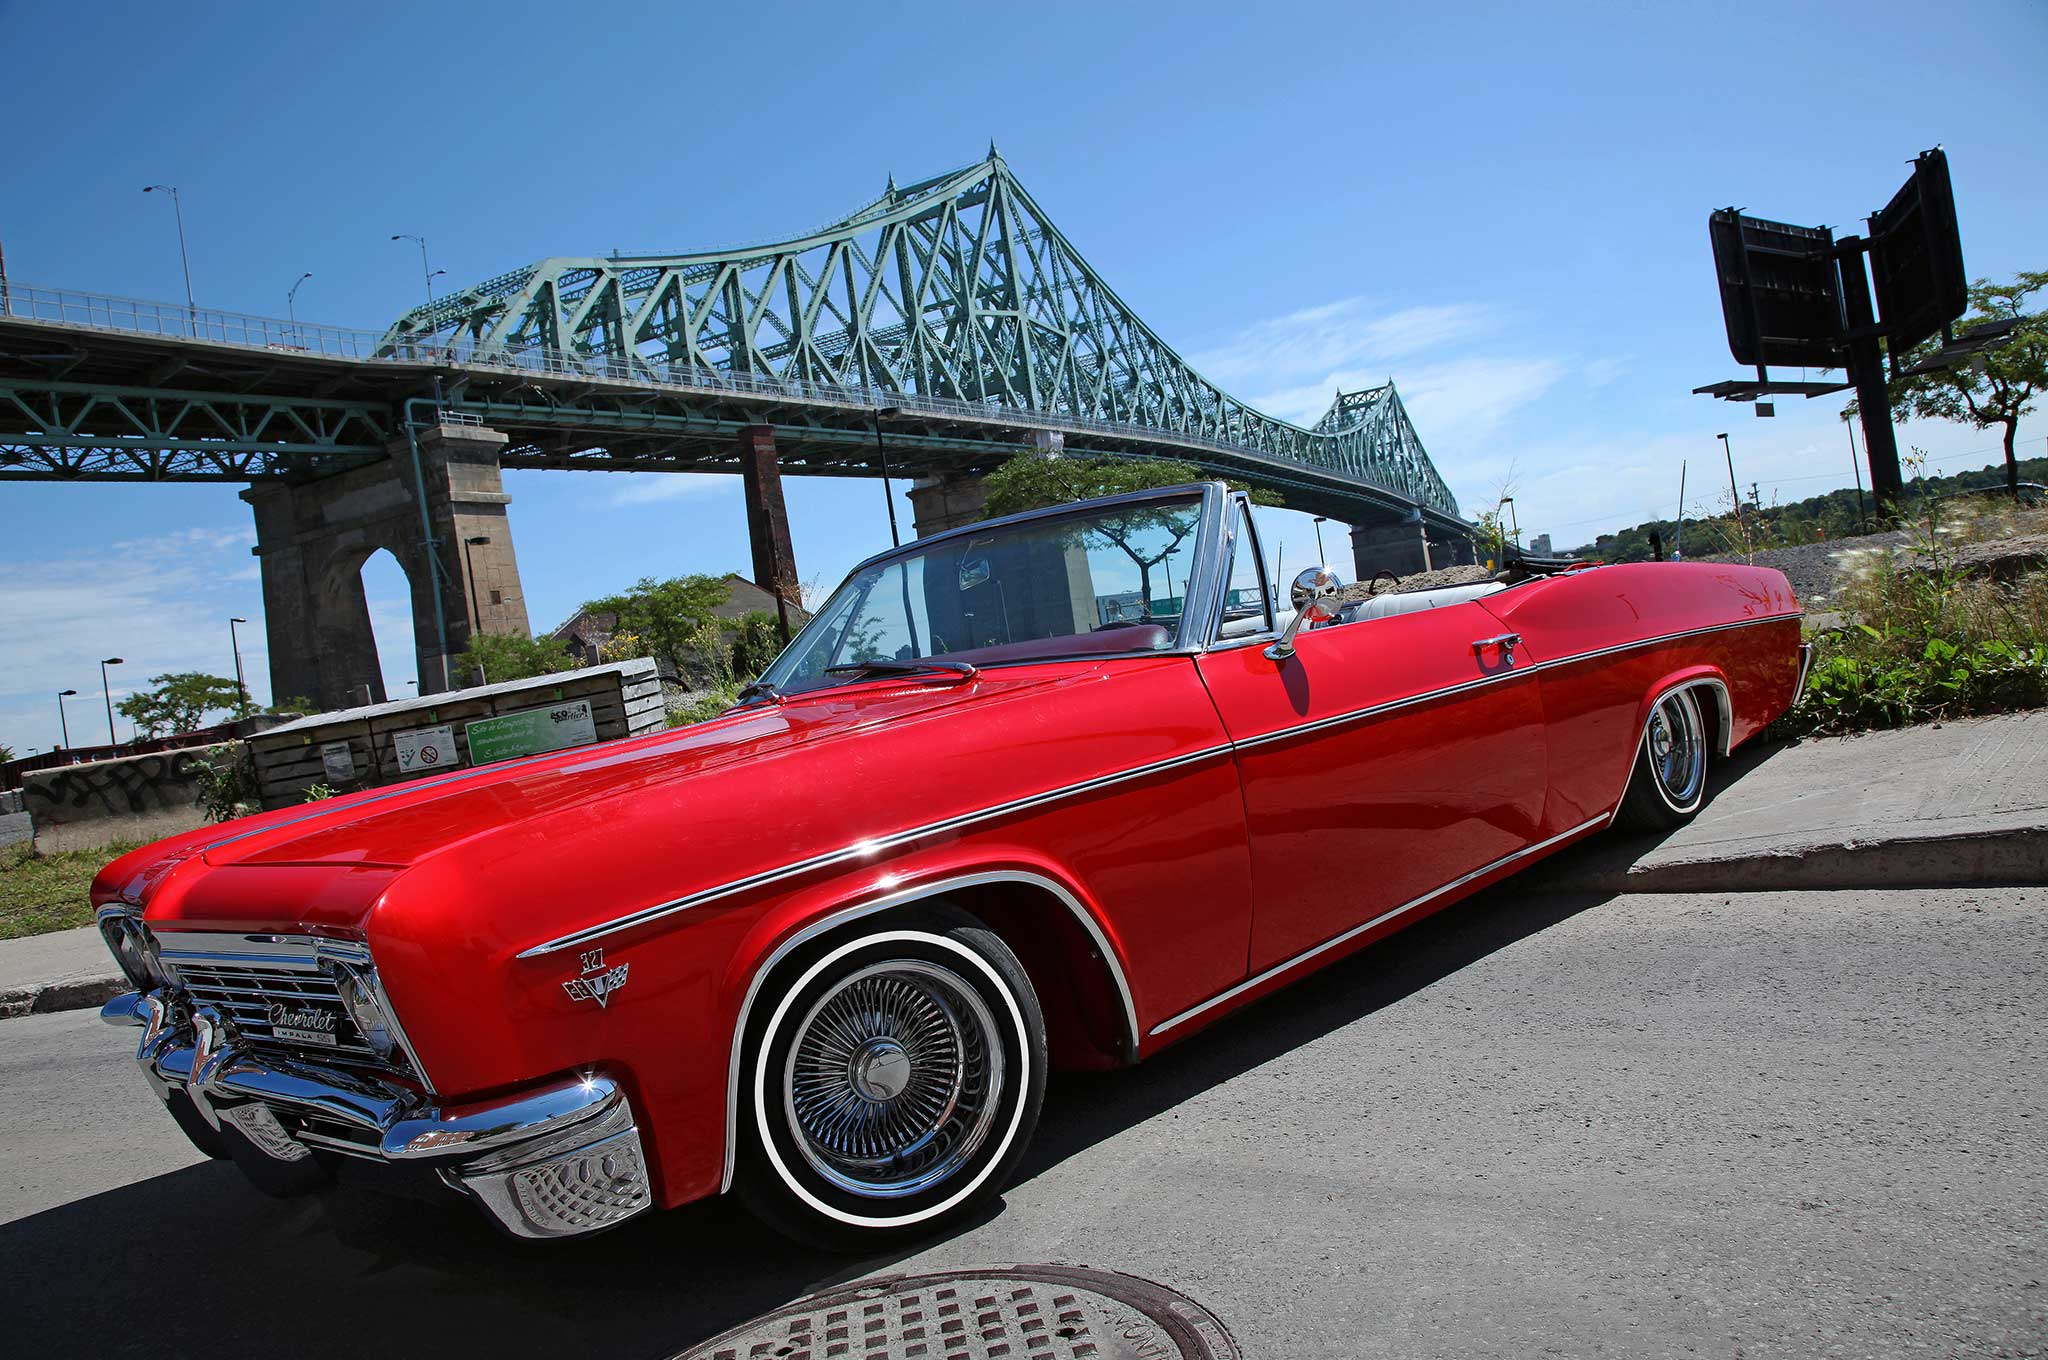 A Canadians Kids Dream Comes True With 66 Impala 1966 Chevy Convertible 1 21